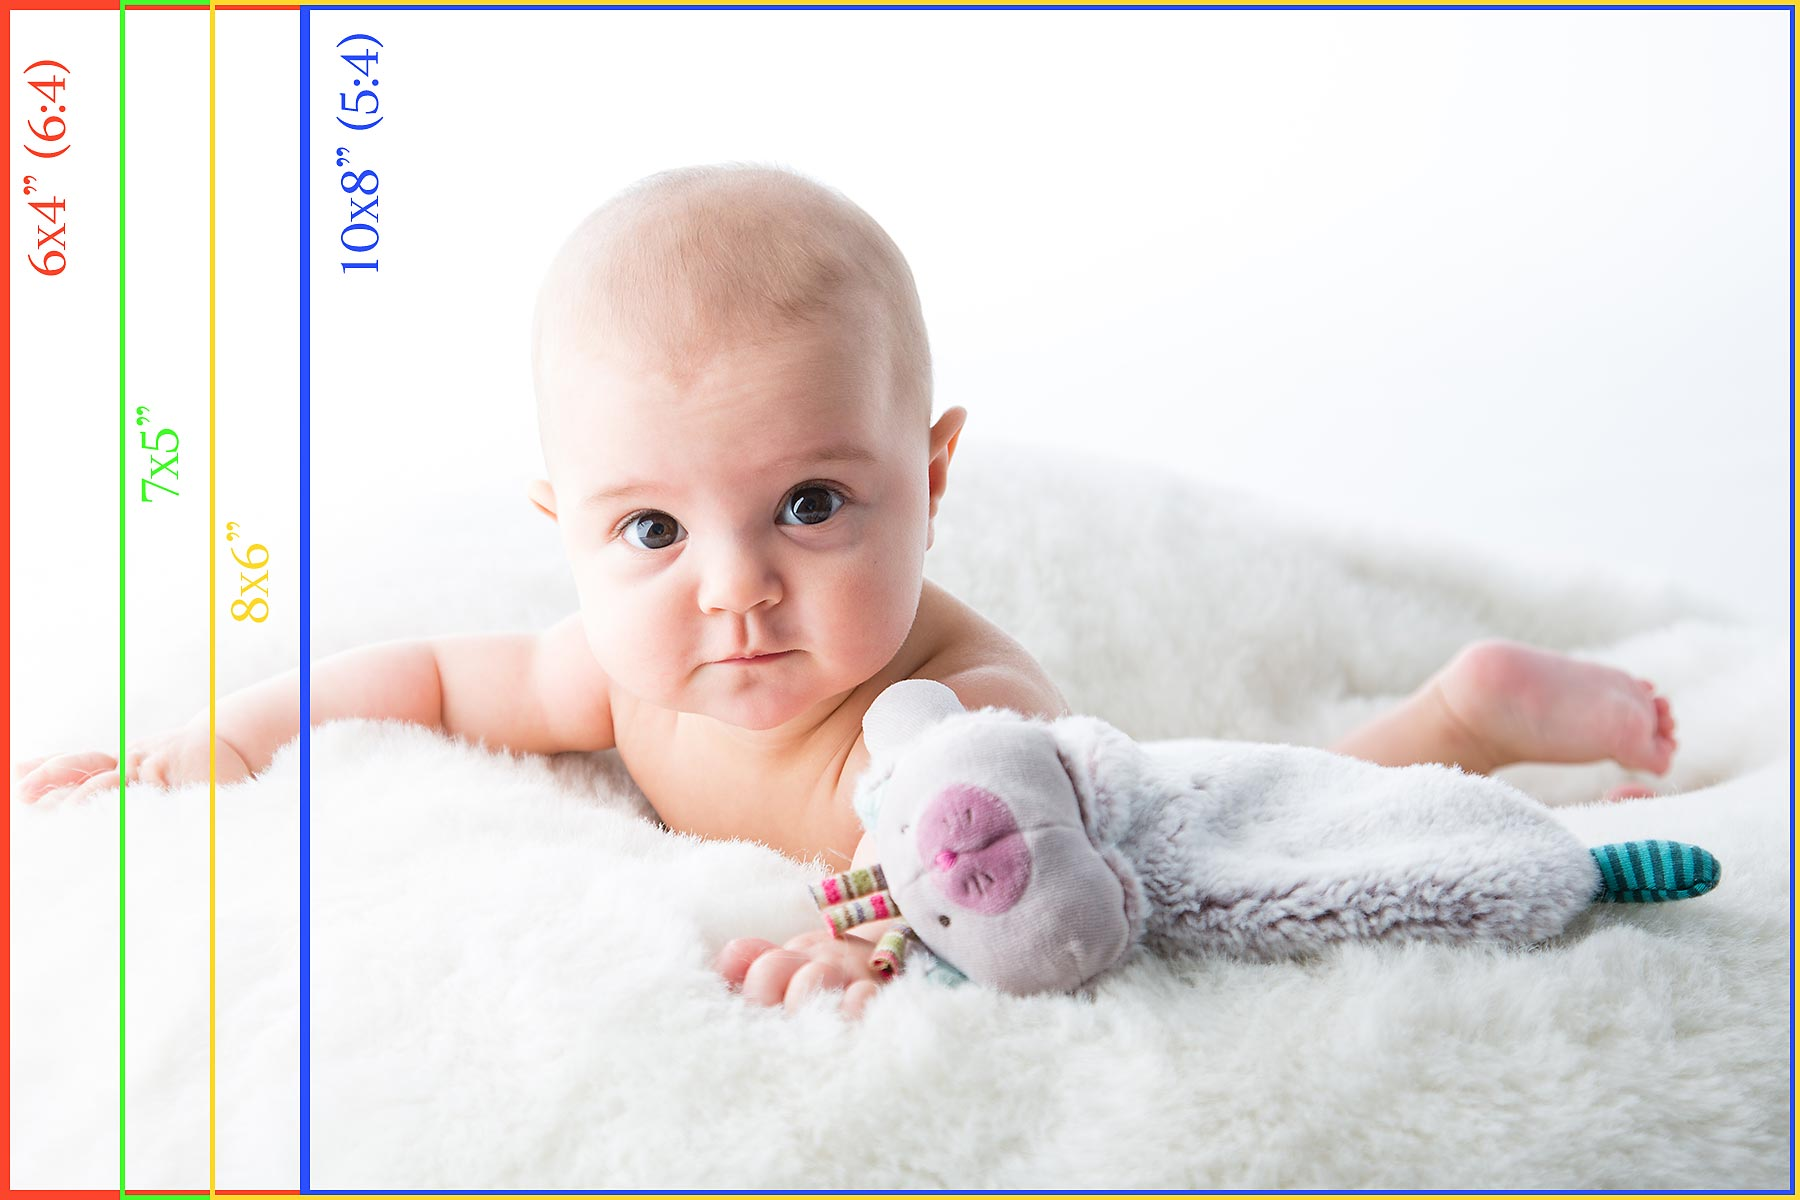 Baby photo to show effect of cropping with different aspect rations